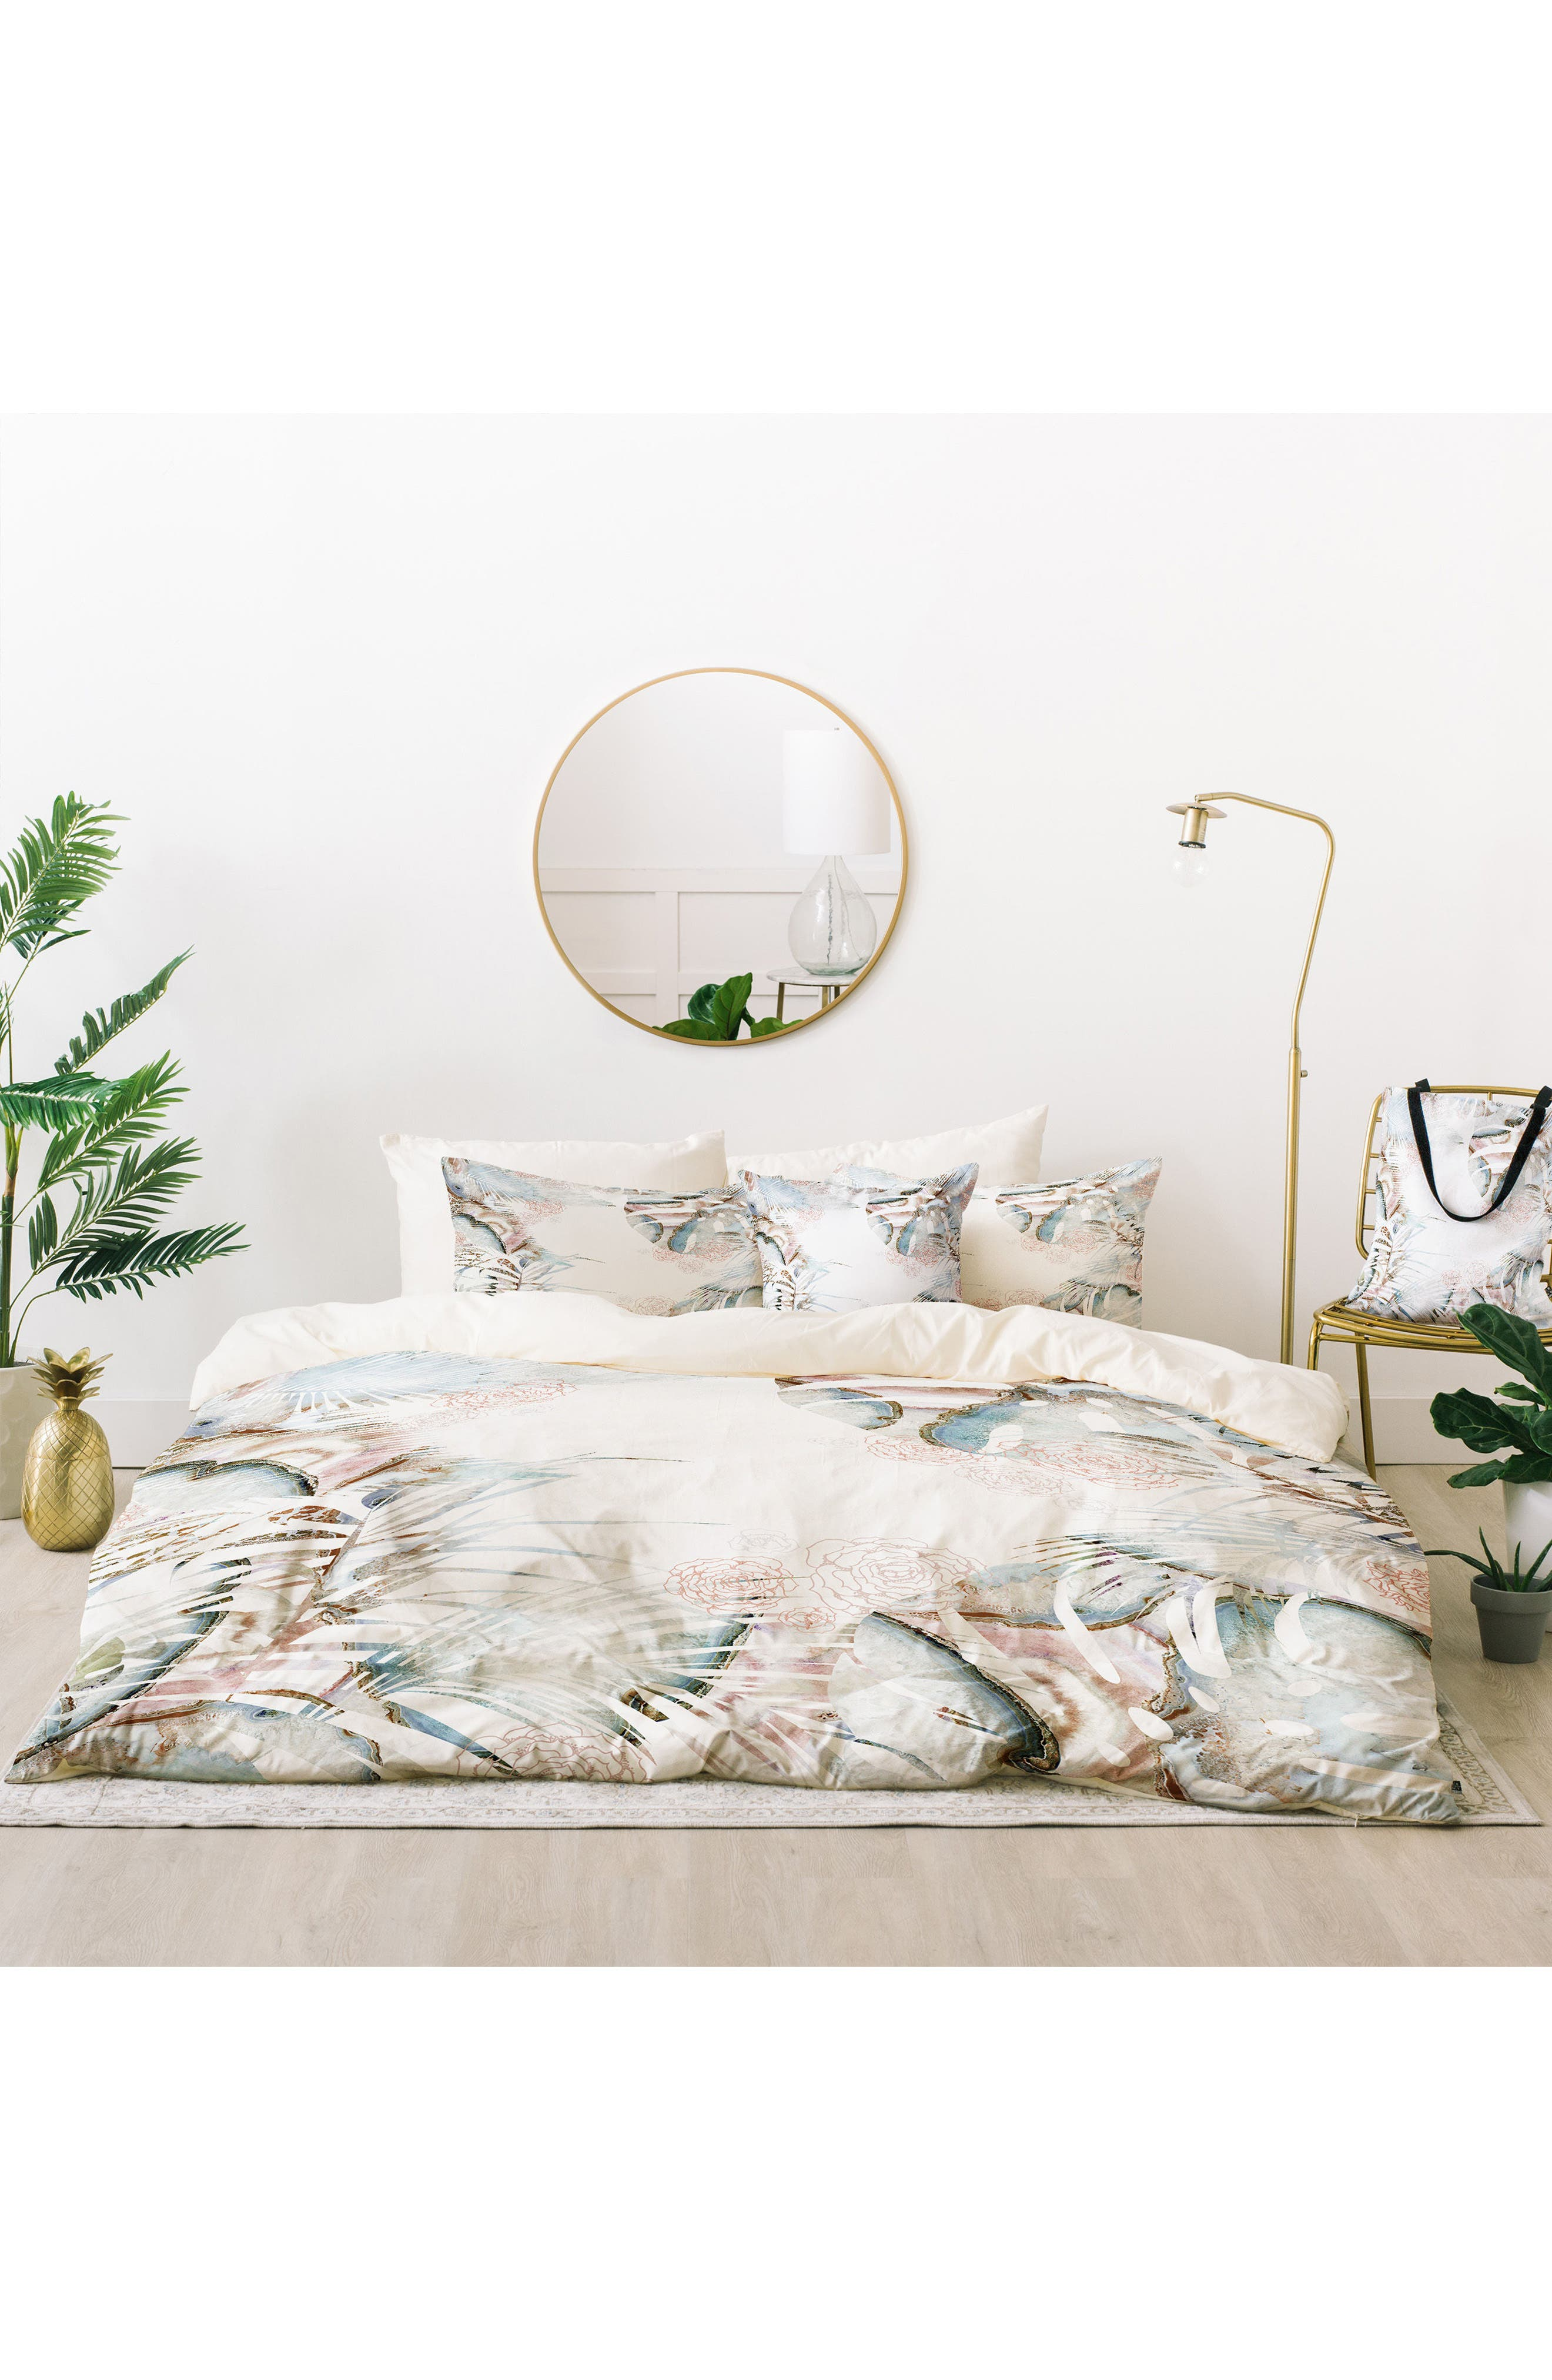 Main Image - Deny Designs Iveta Abolina Honey It's Nap Time Bed in a Bag Duvet Cover, Sham & Accent Pillow Set